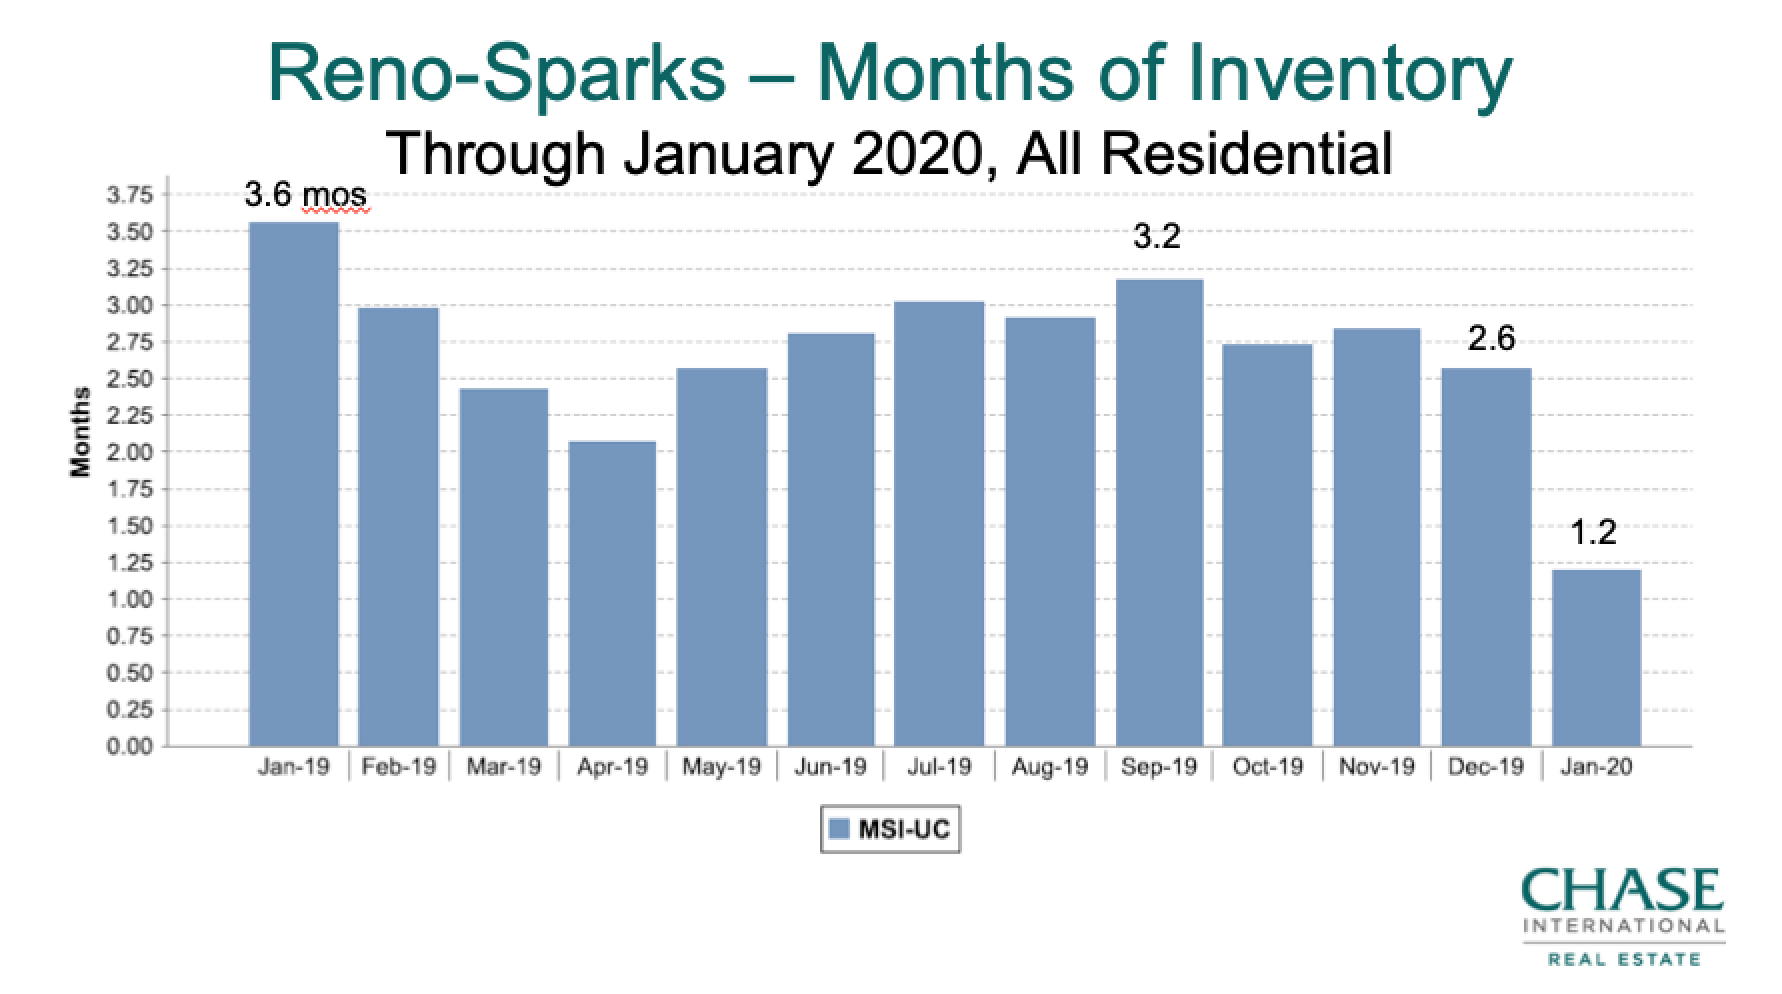 Months Supply Inventory Reno-Sparks 2019-Jan 2020